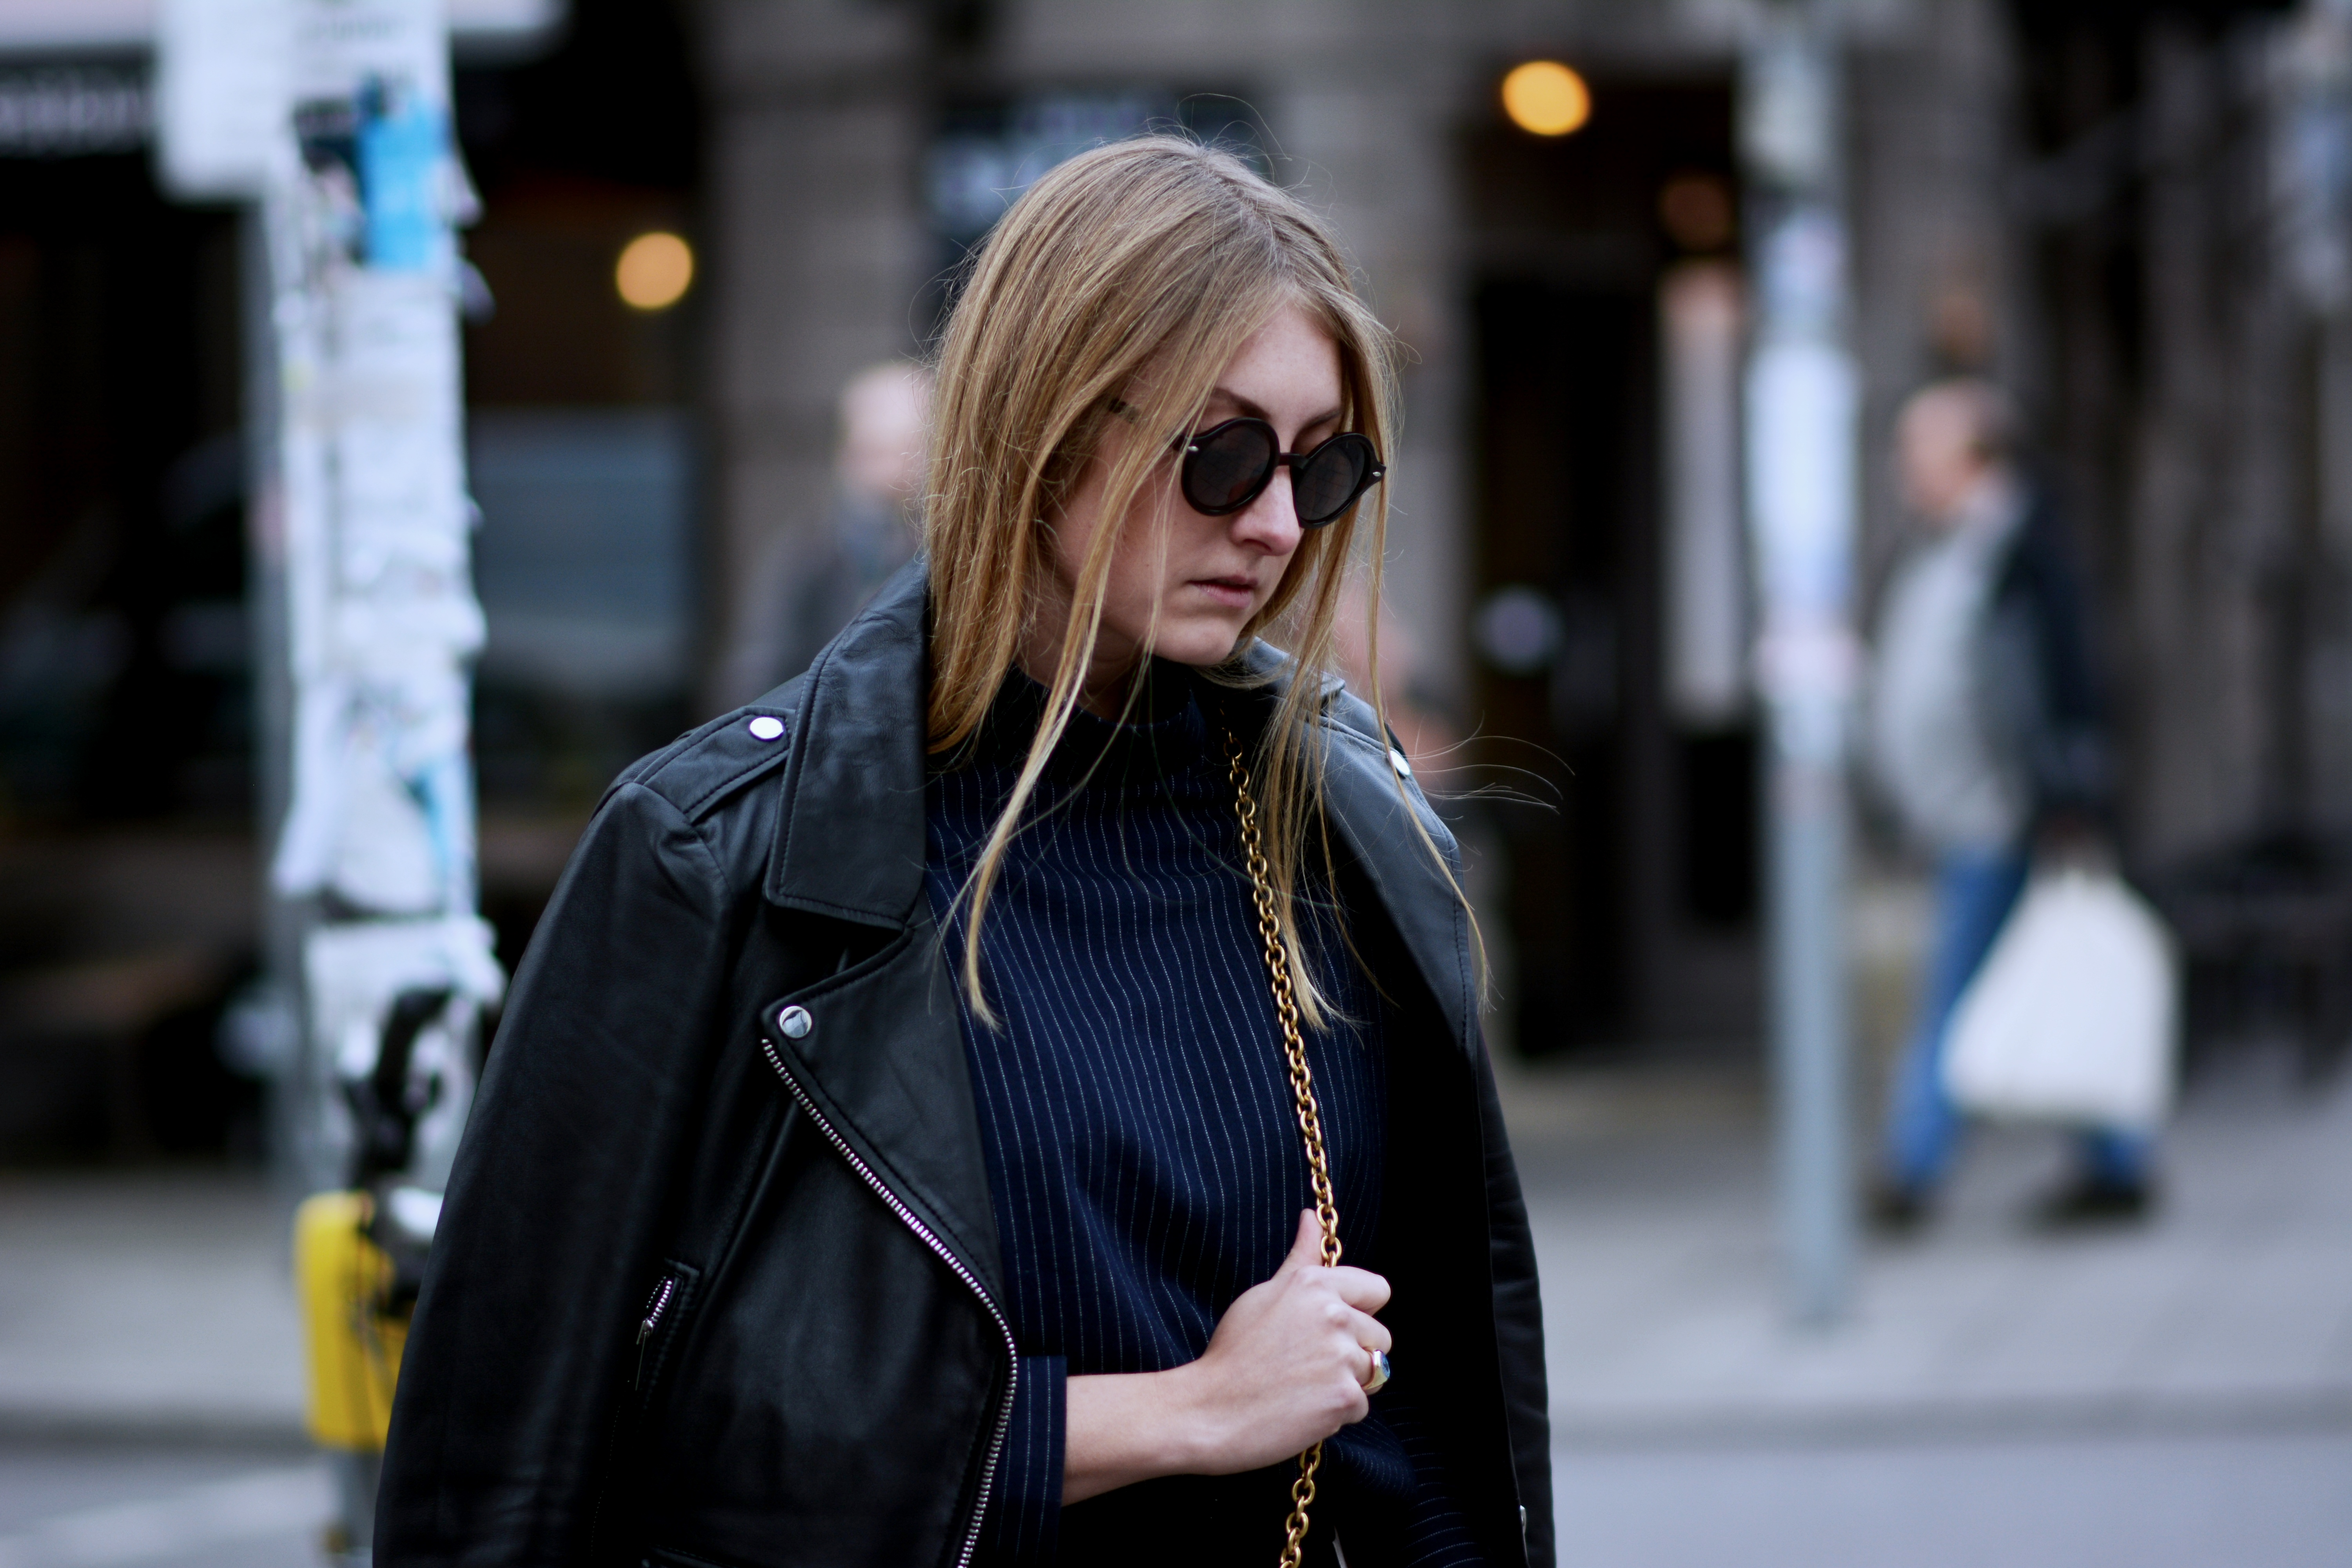 OUTFIT: LEATHER JACKET GOALS